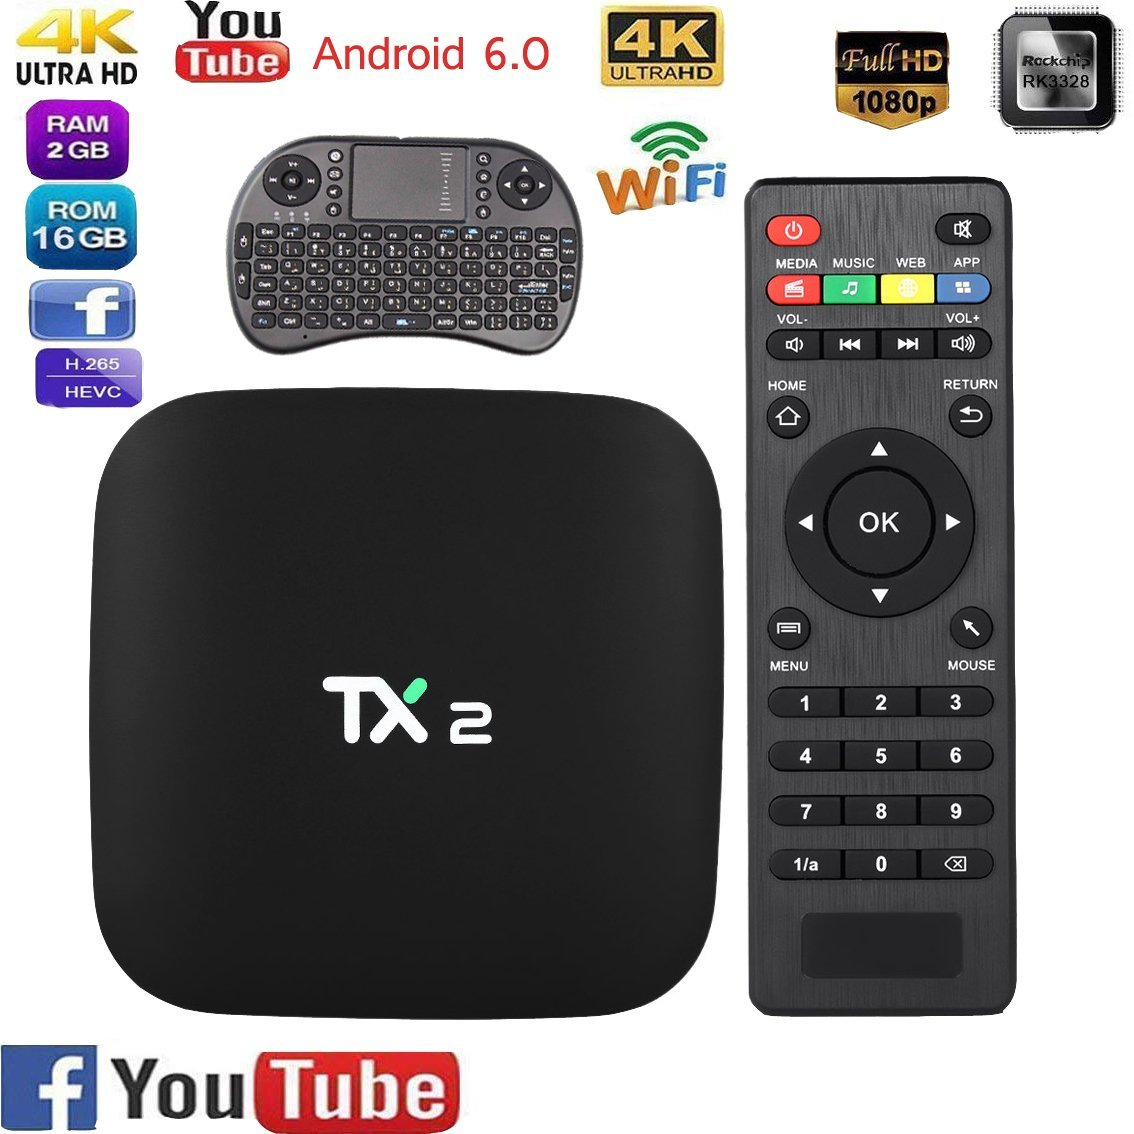 YIMOHWANG TX2 Smart Android 6.0 Smart Tv Box 2GB RAM 16GB ROM 2.4GHz WiFi 4K H.265 DLNA AirPlay 4K Smart TV Box TX2 R1 R2